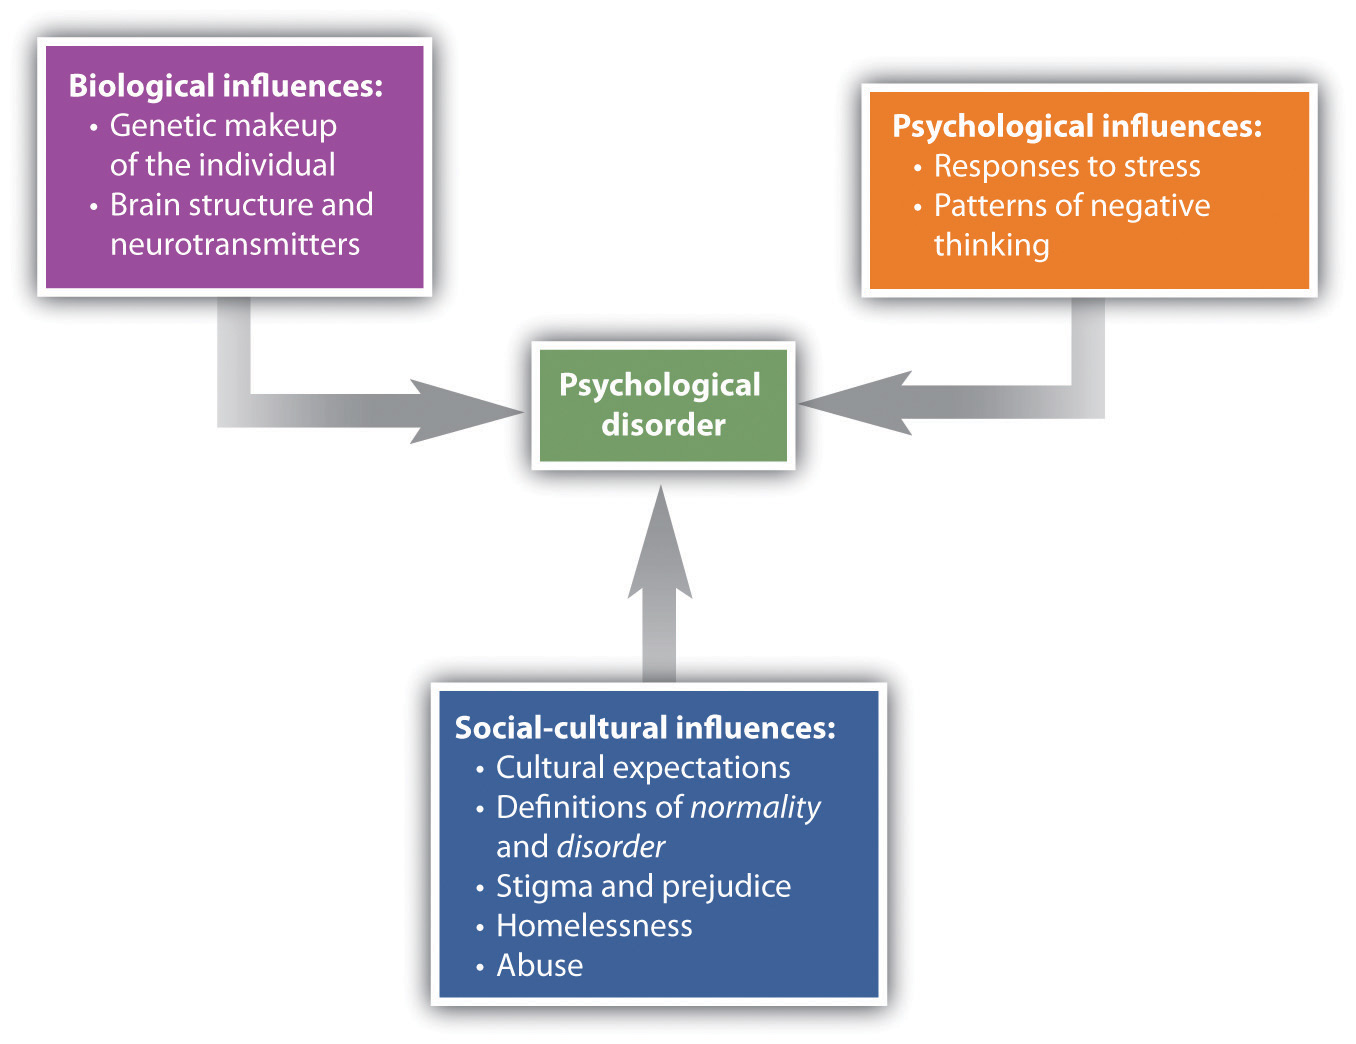 The Bio-Psycho-Social Model (caused by biological, psychological, and social-cultural factors)